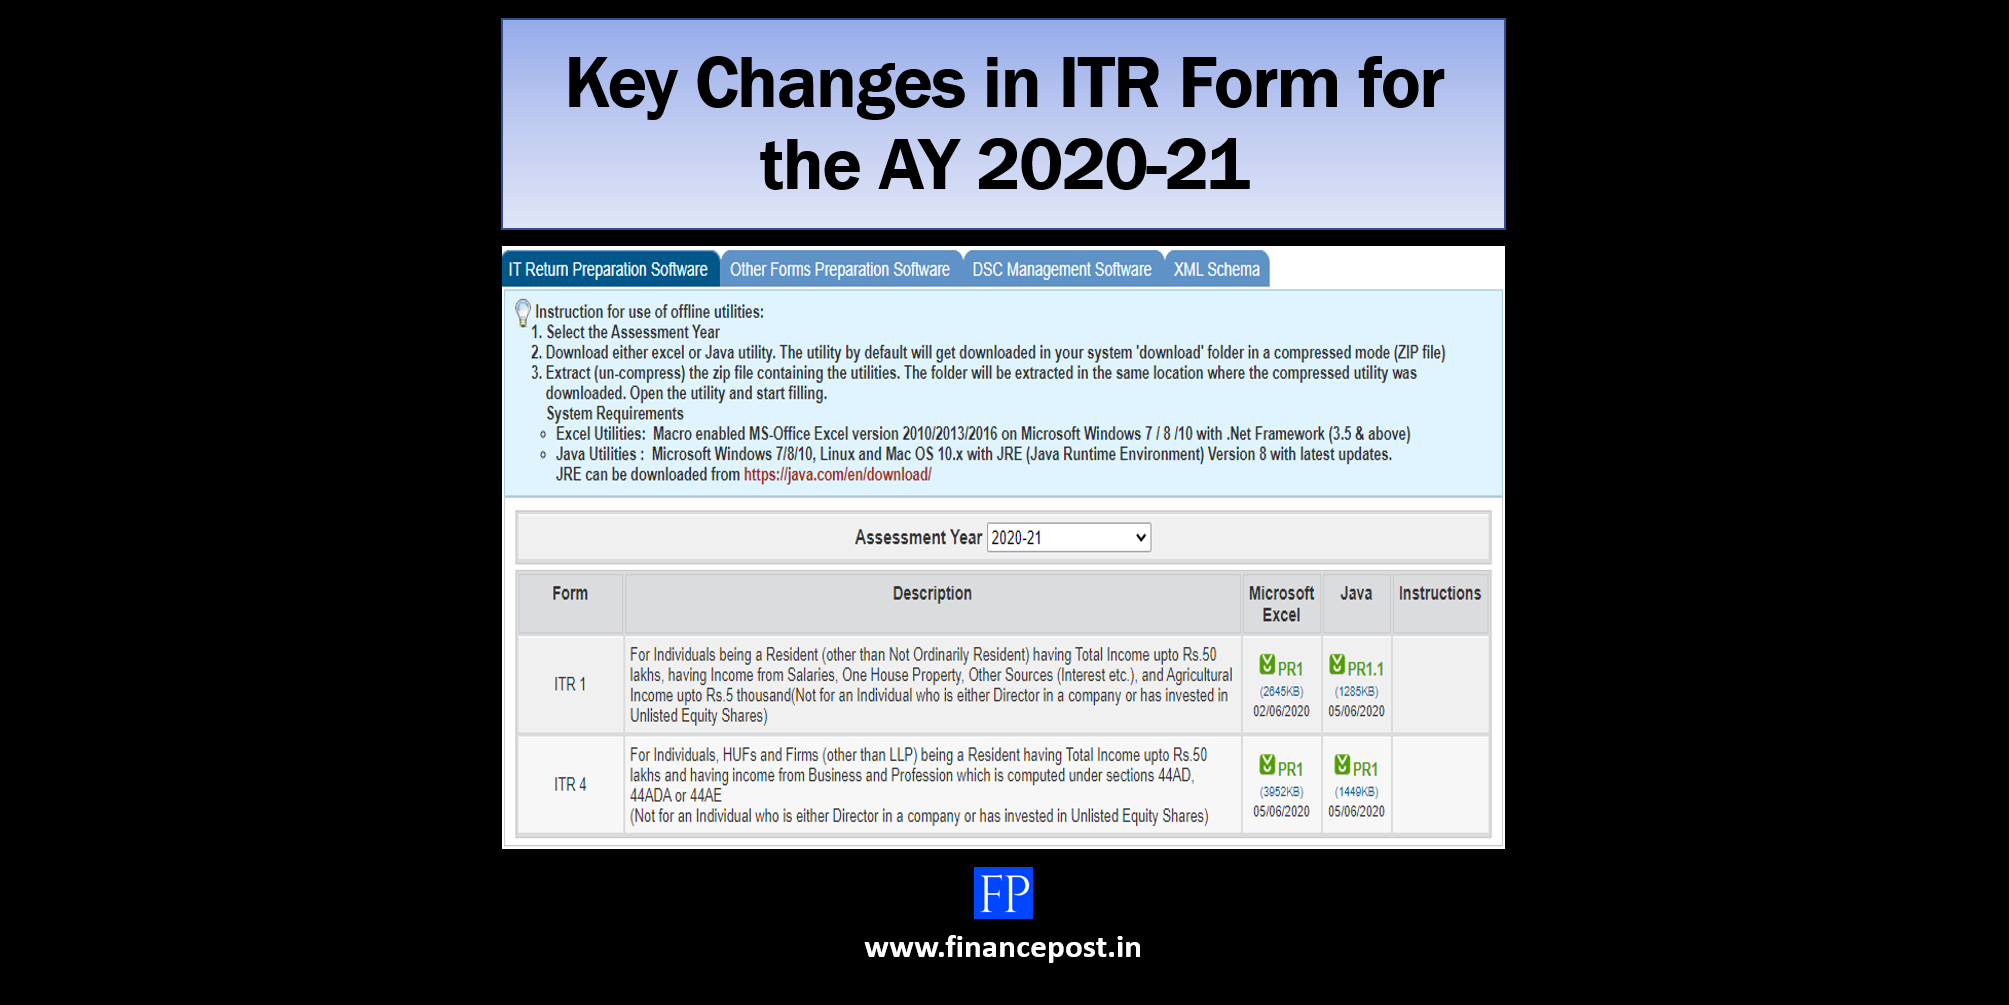 Key Changes in ITR Form for the AY 2020-21